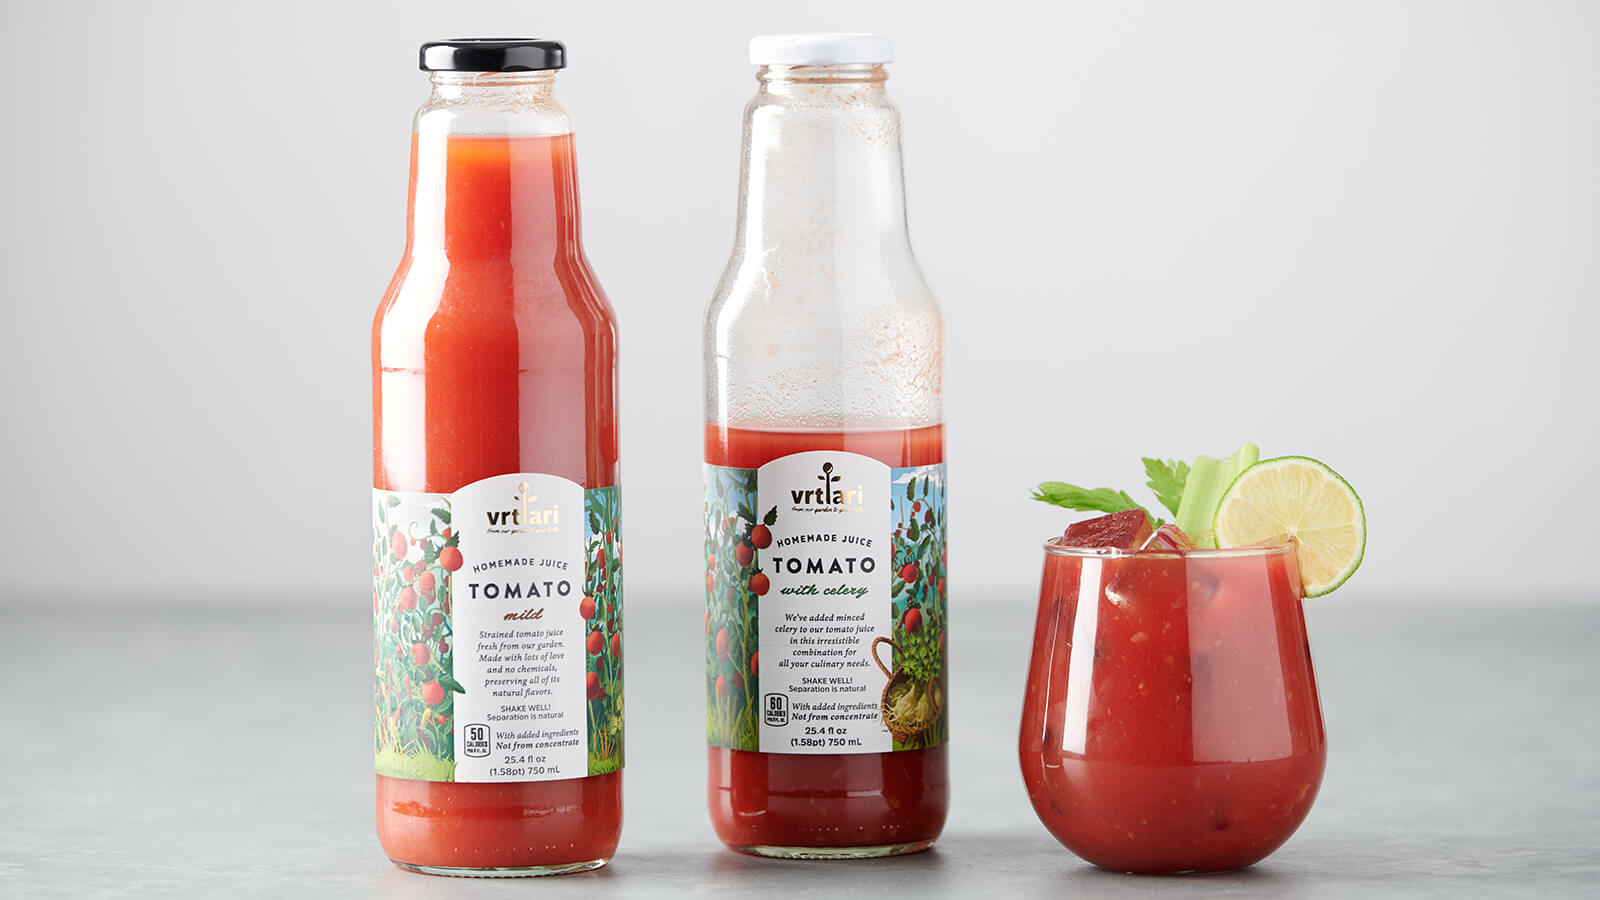 Vrtlari Tomato Juices